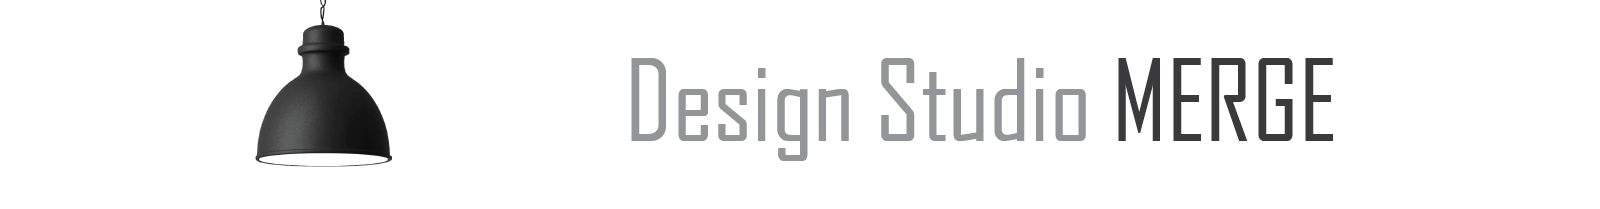 Design Studio Merge